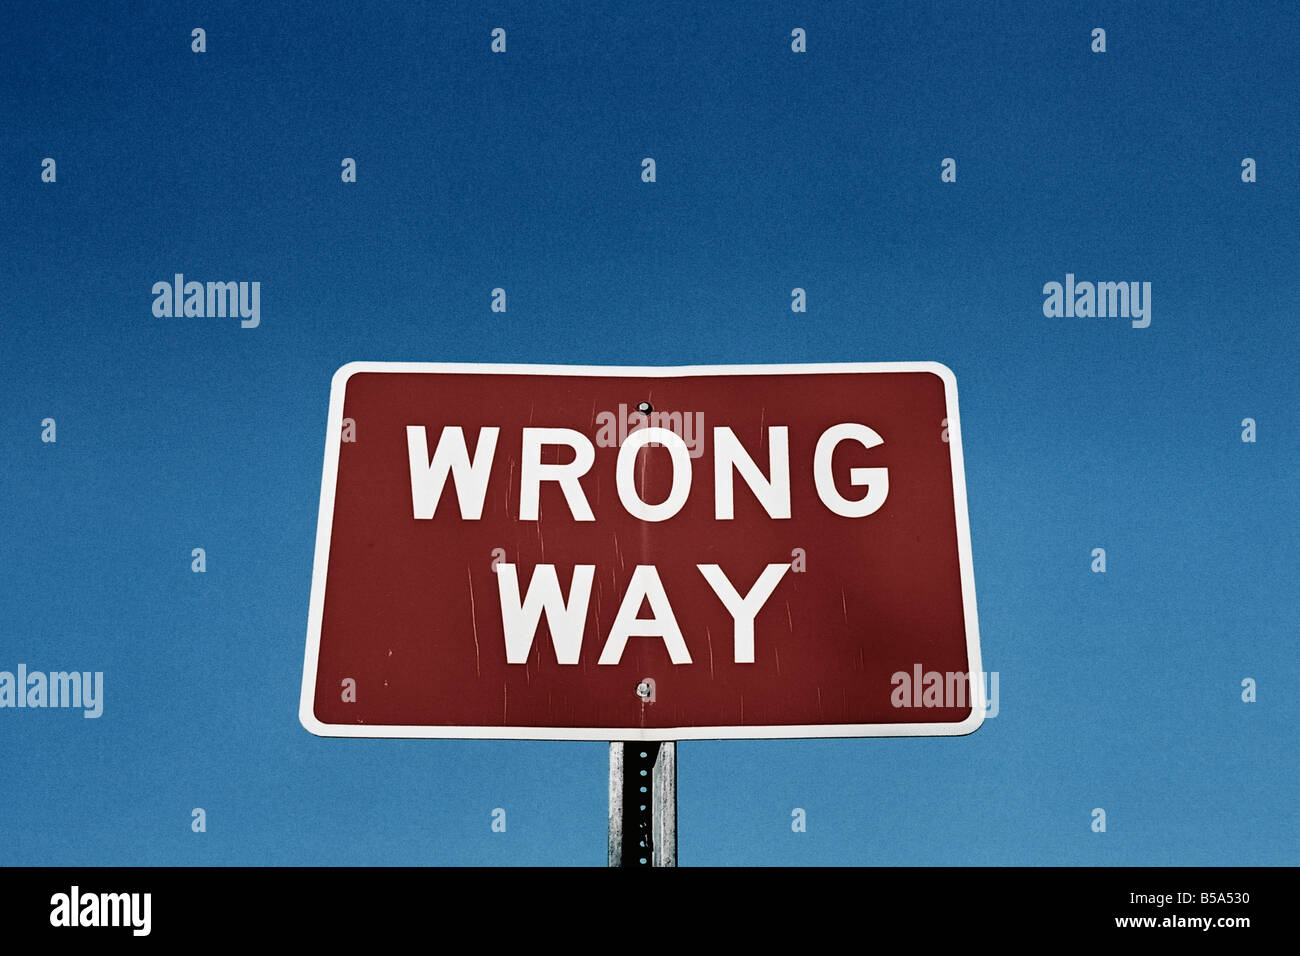 Wrong Way Road Sign Against Sky Low Angle View - Stock Image